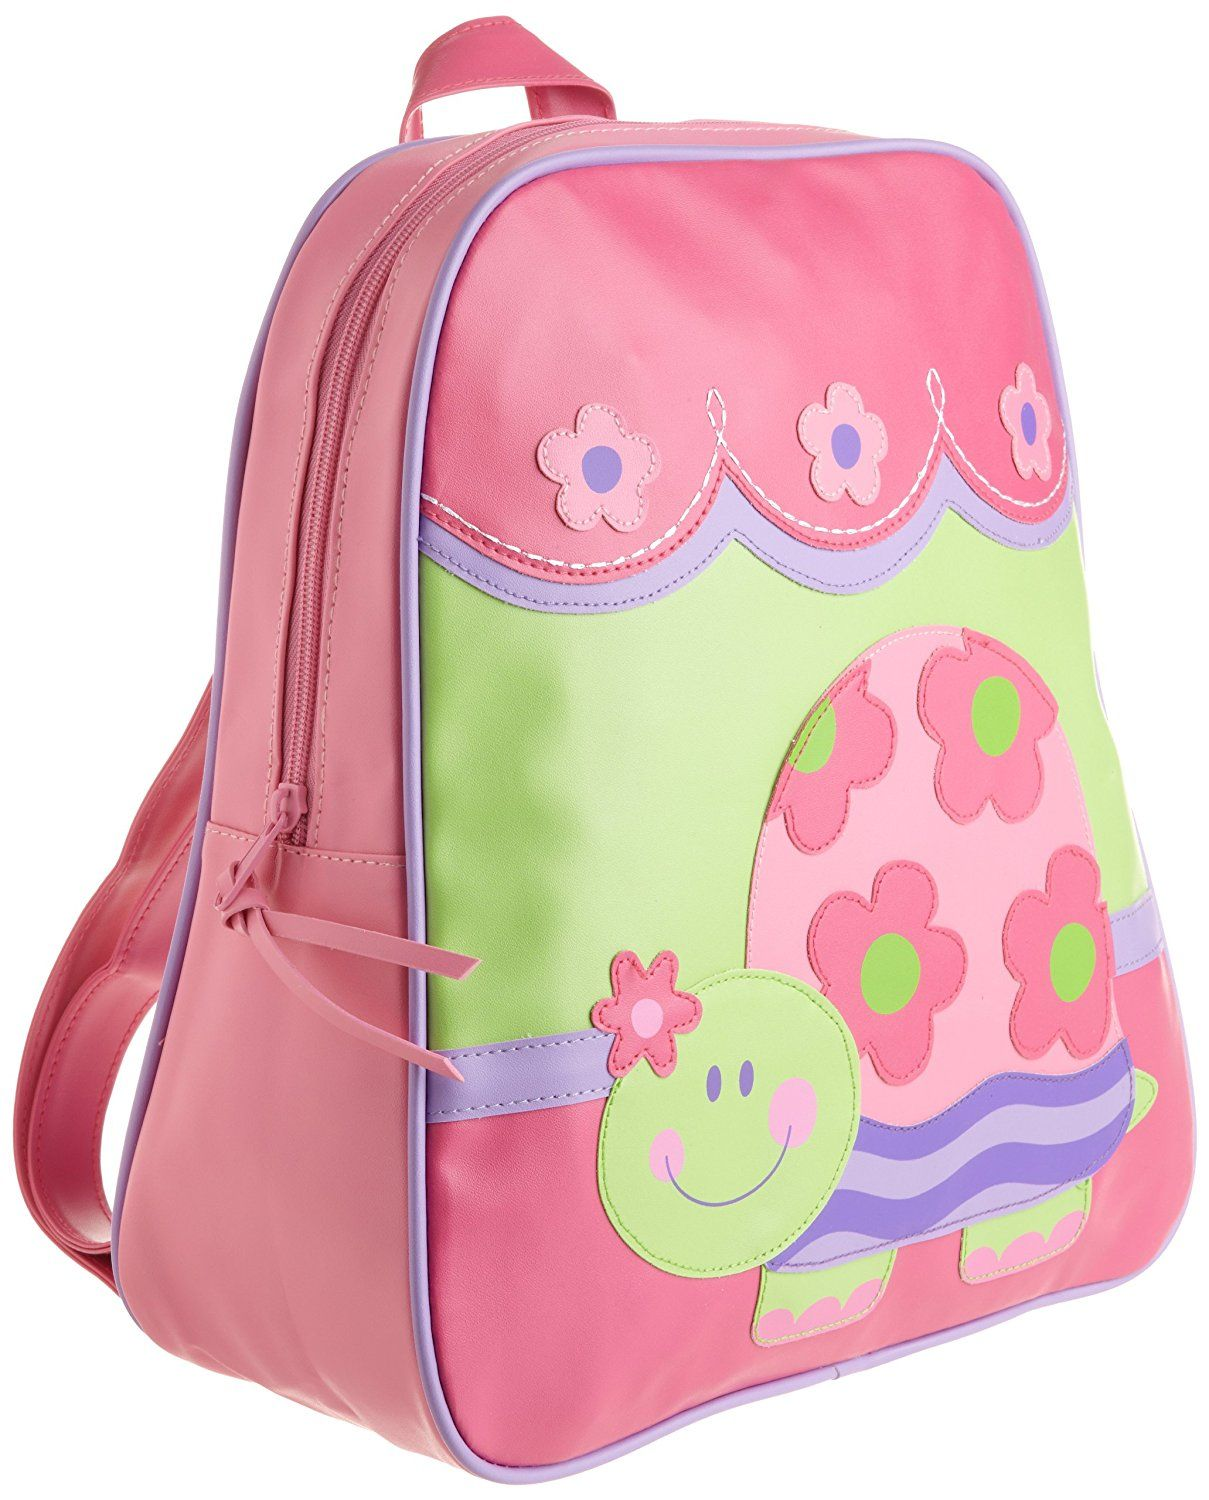 Stephen Joseph Little Girls'  Go Go Bag, Turtle, One Size *** You can get more details by clicking on the image.